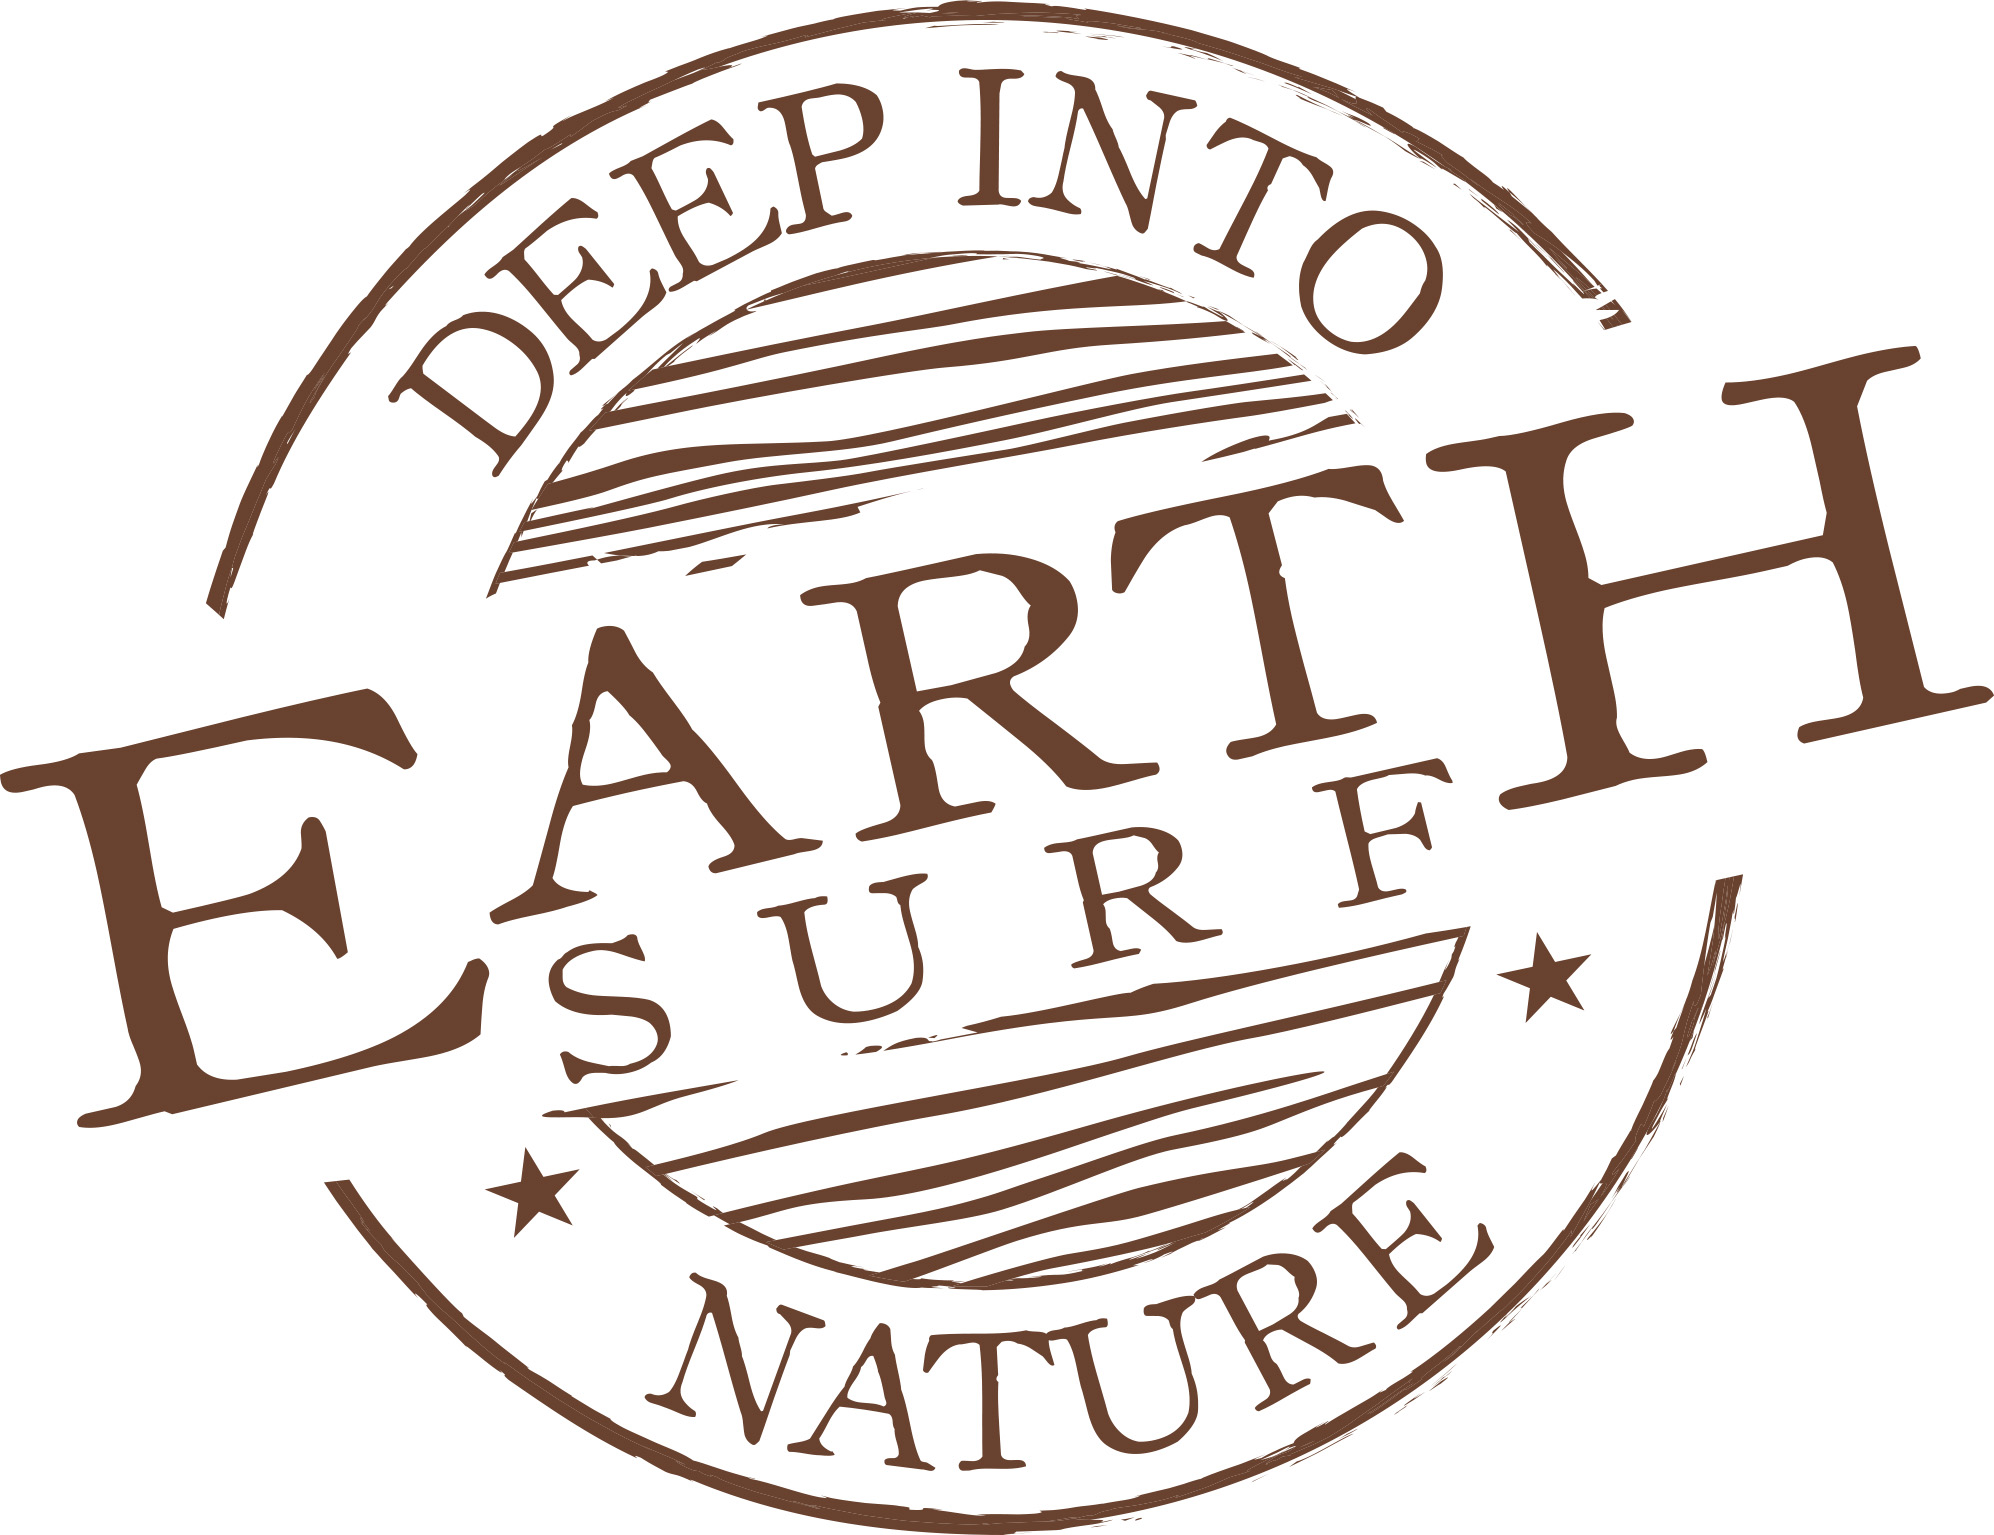 SURF EARTH : EARTH SURF pas cher